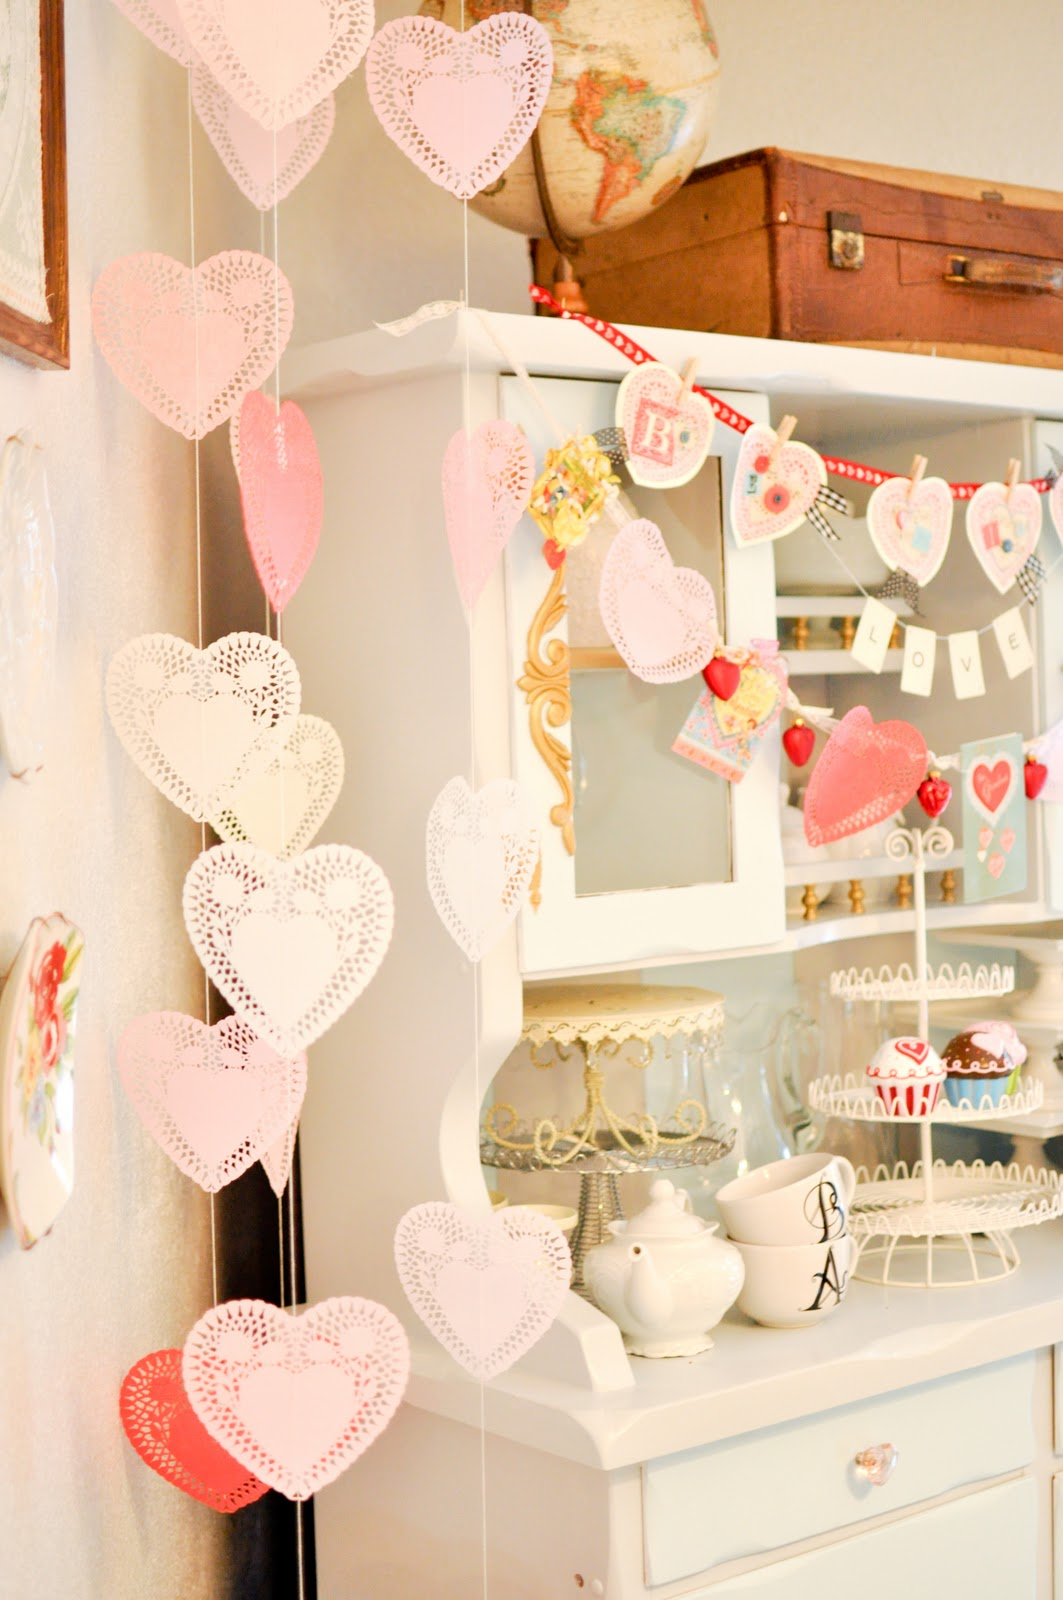 DIY Valentine's Day Heart Decoration